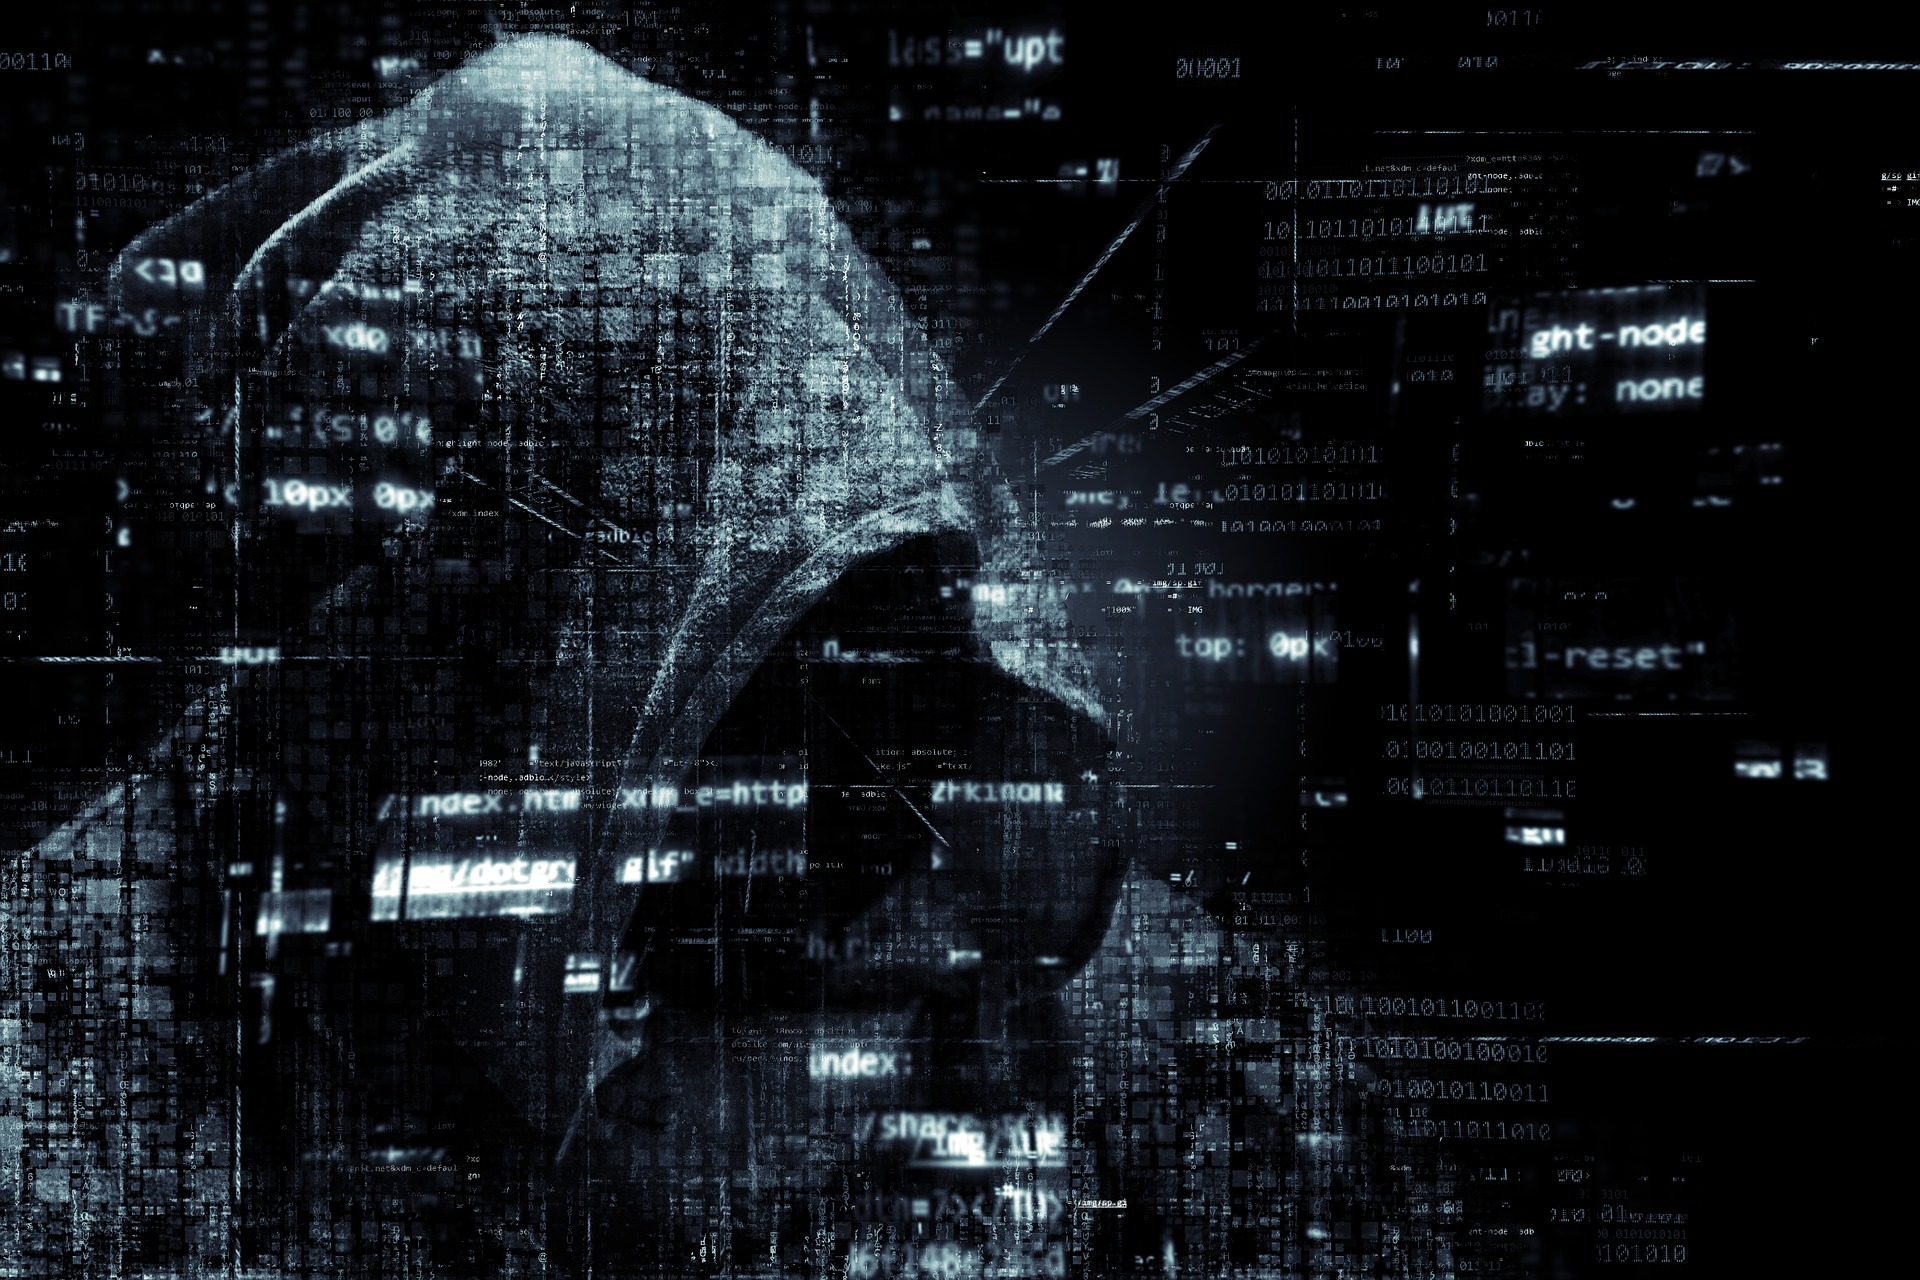 4 Reasons Why Cyber Attacks Target Small Businesses